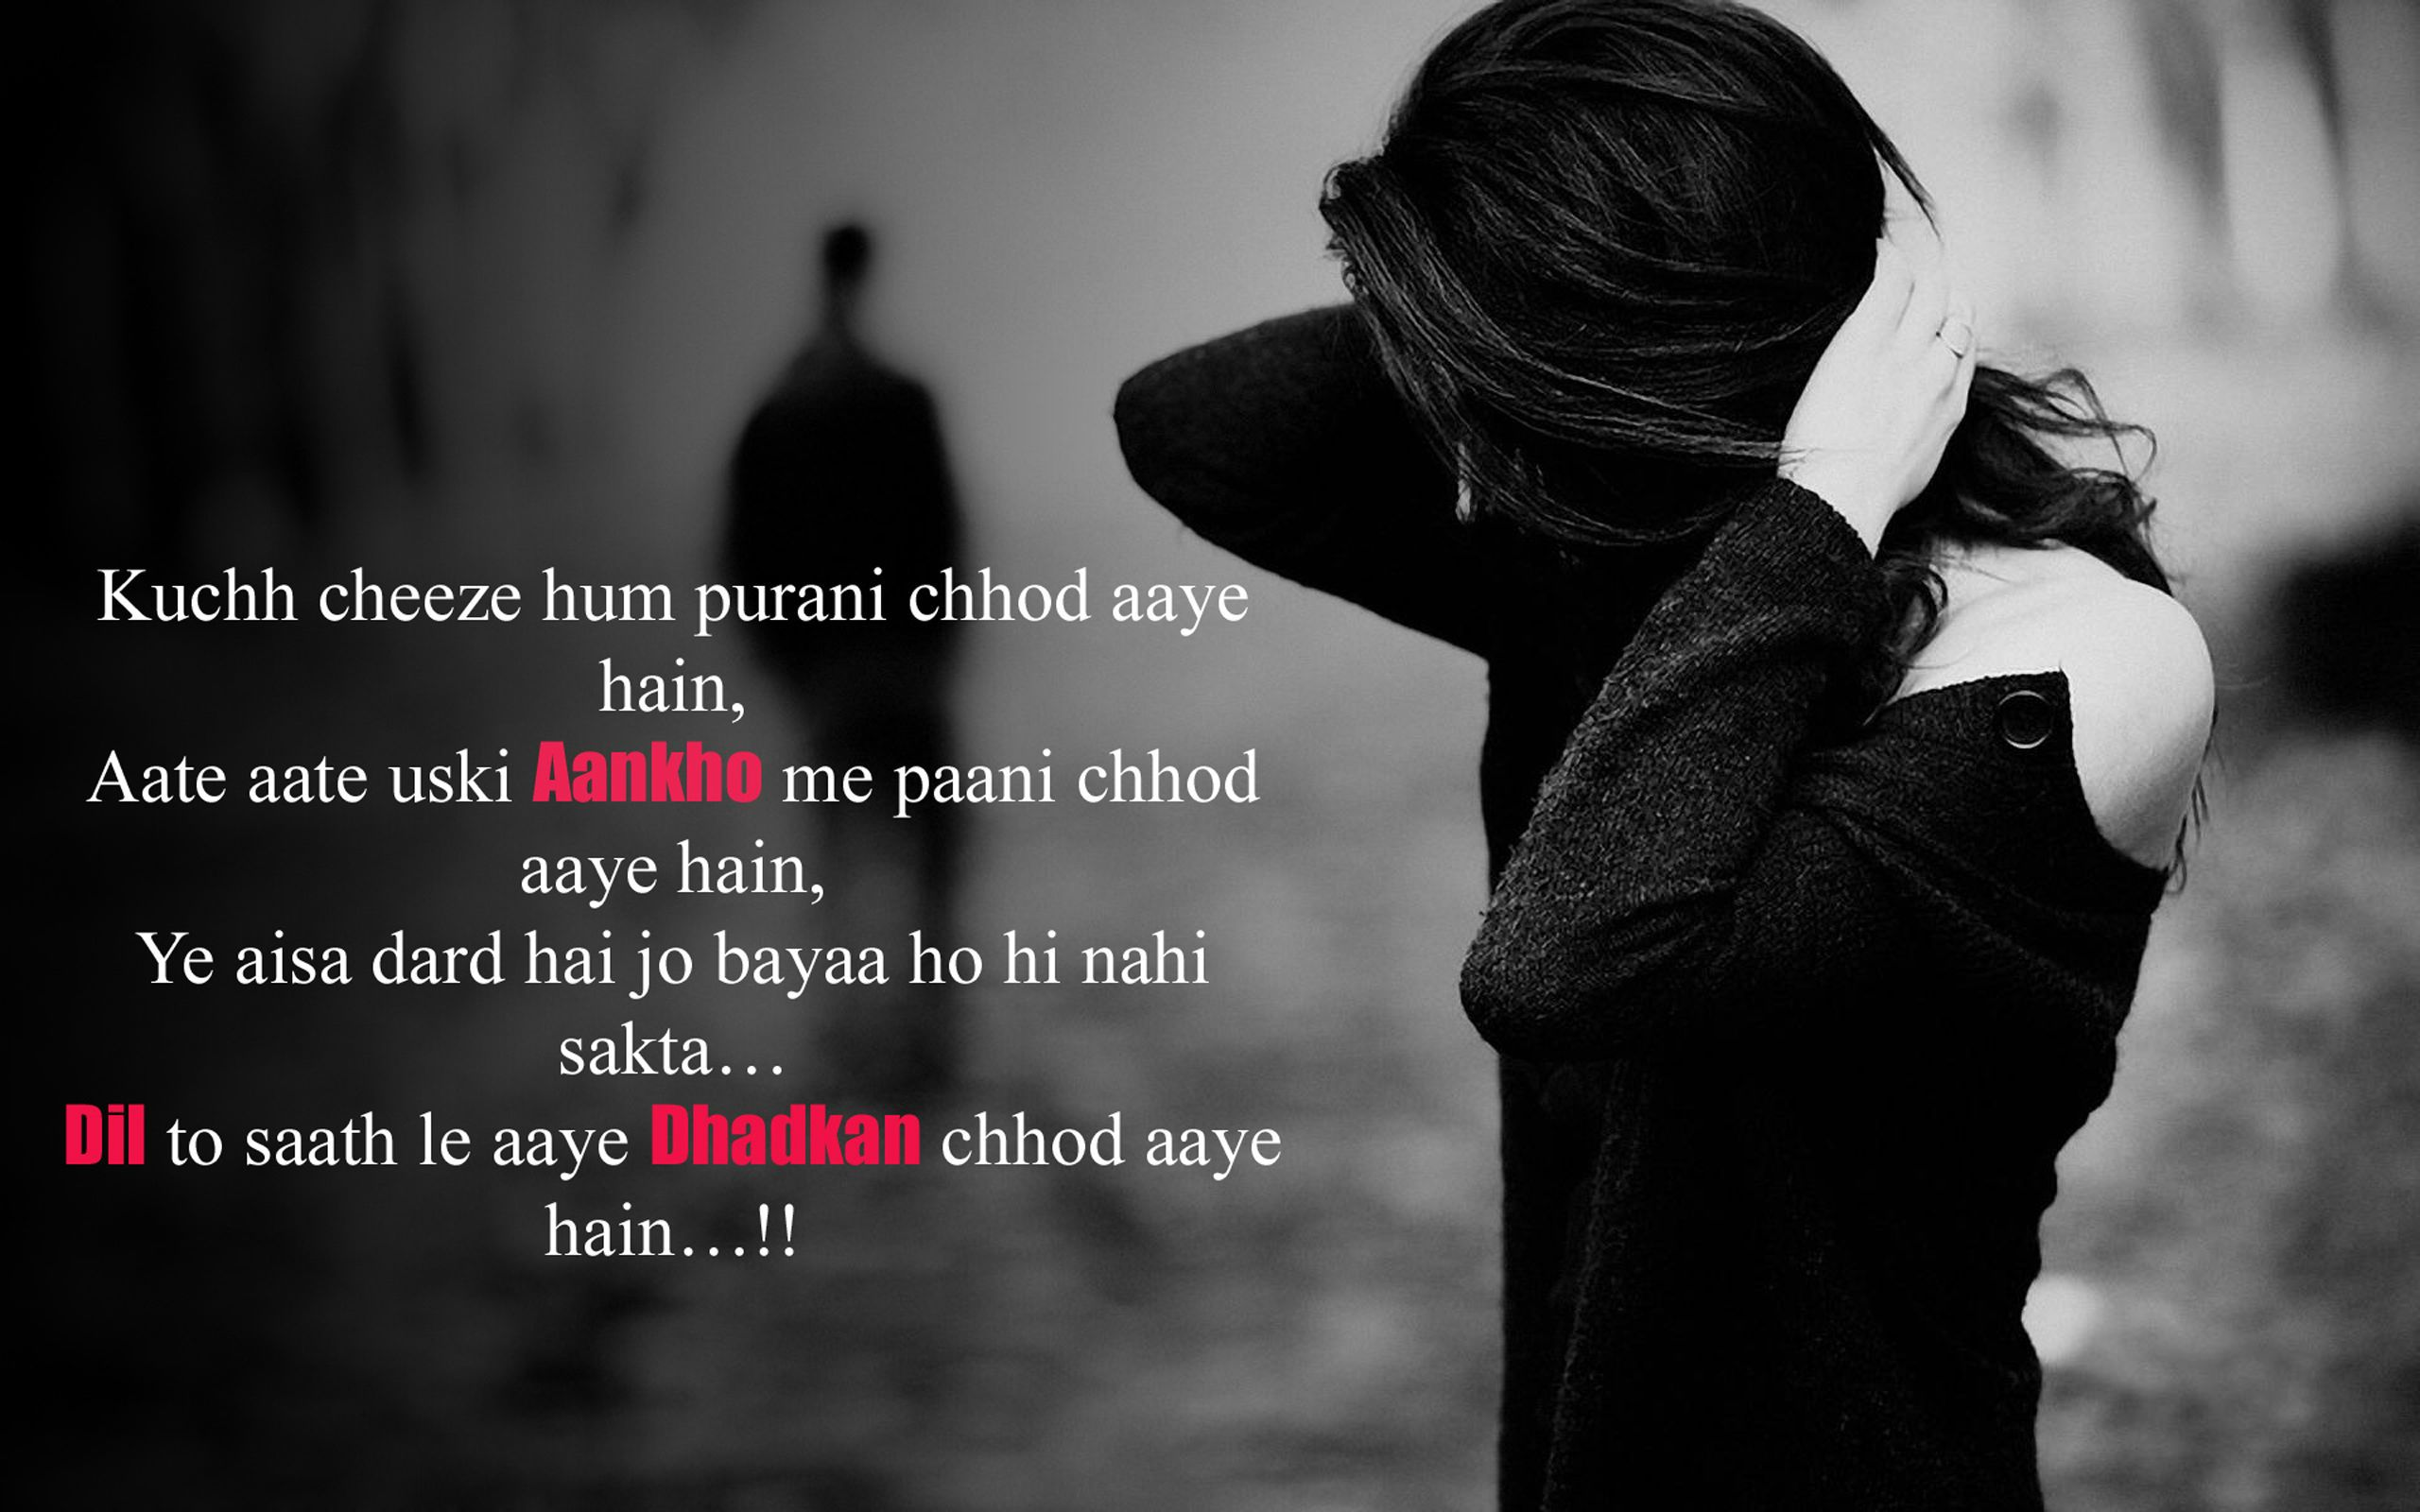 Wallpaper download love shayri - Wallpaper Download Love Shayri 24